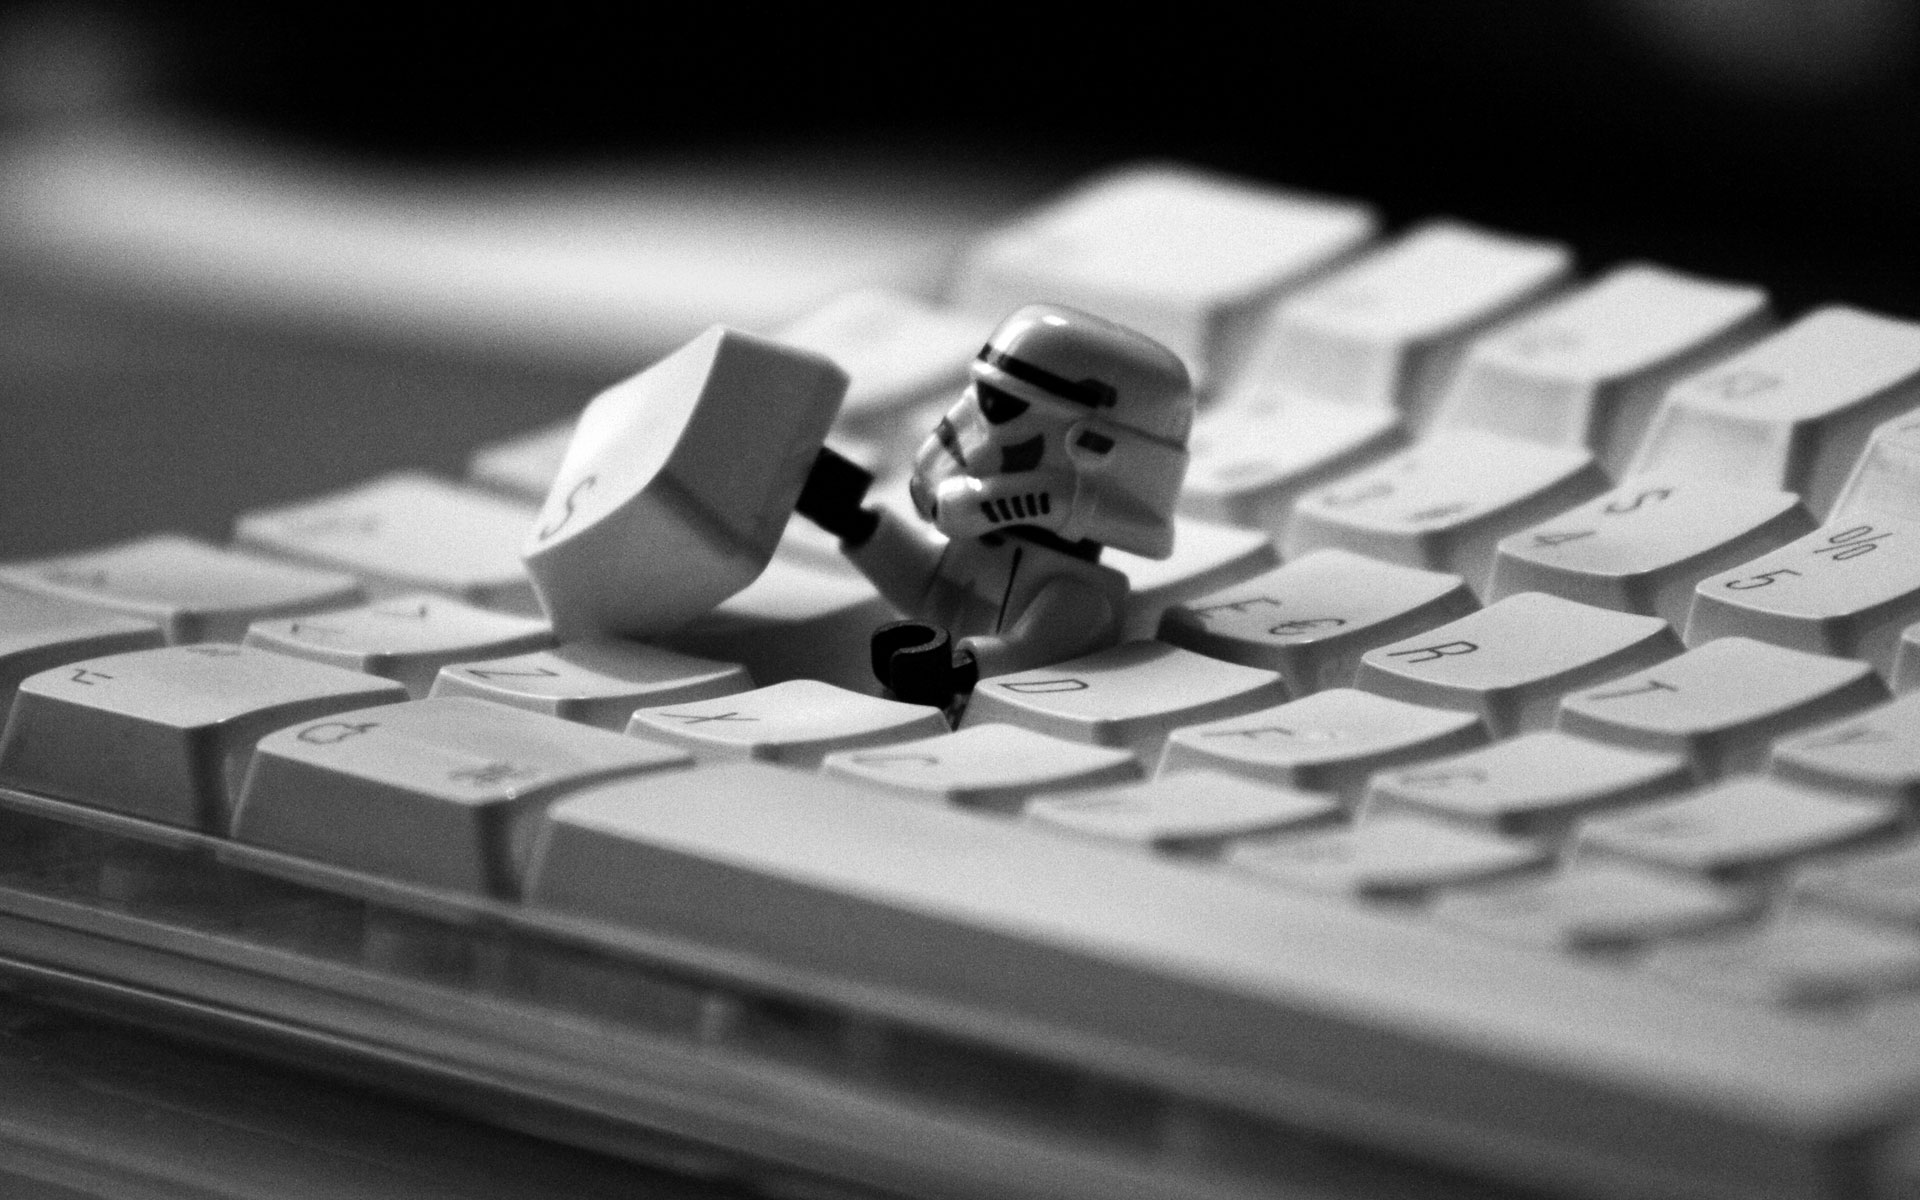 star wars stormtrooper funny - photo #11